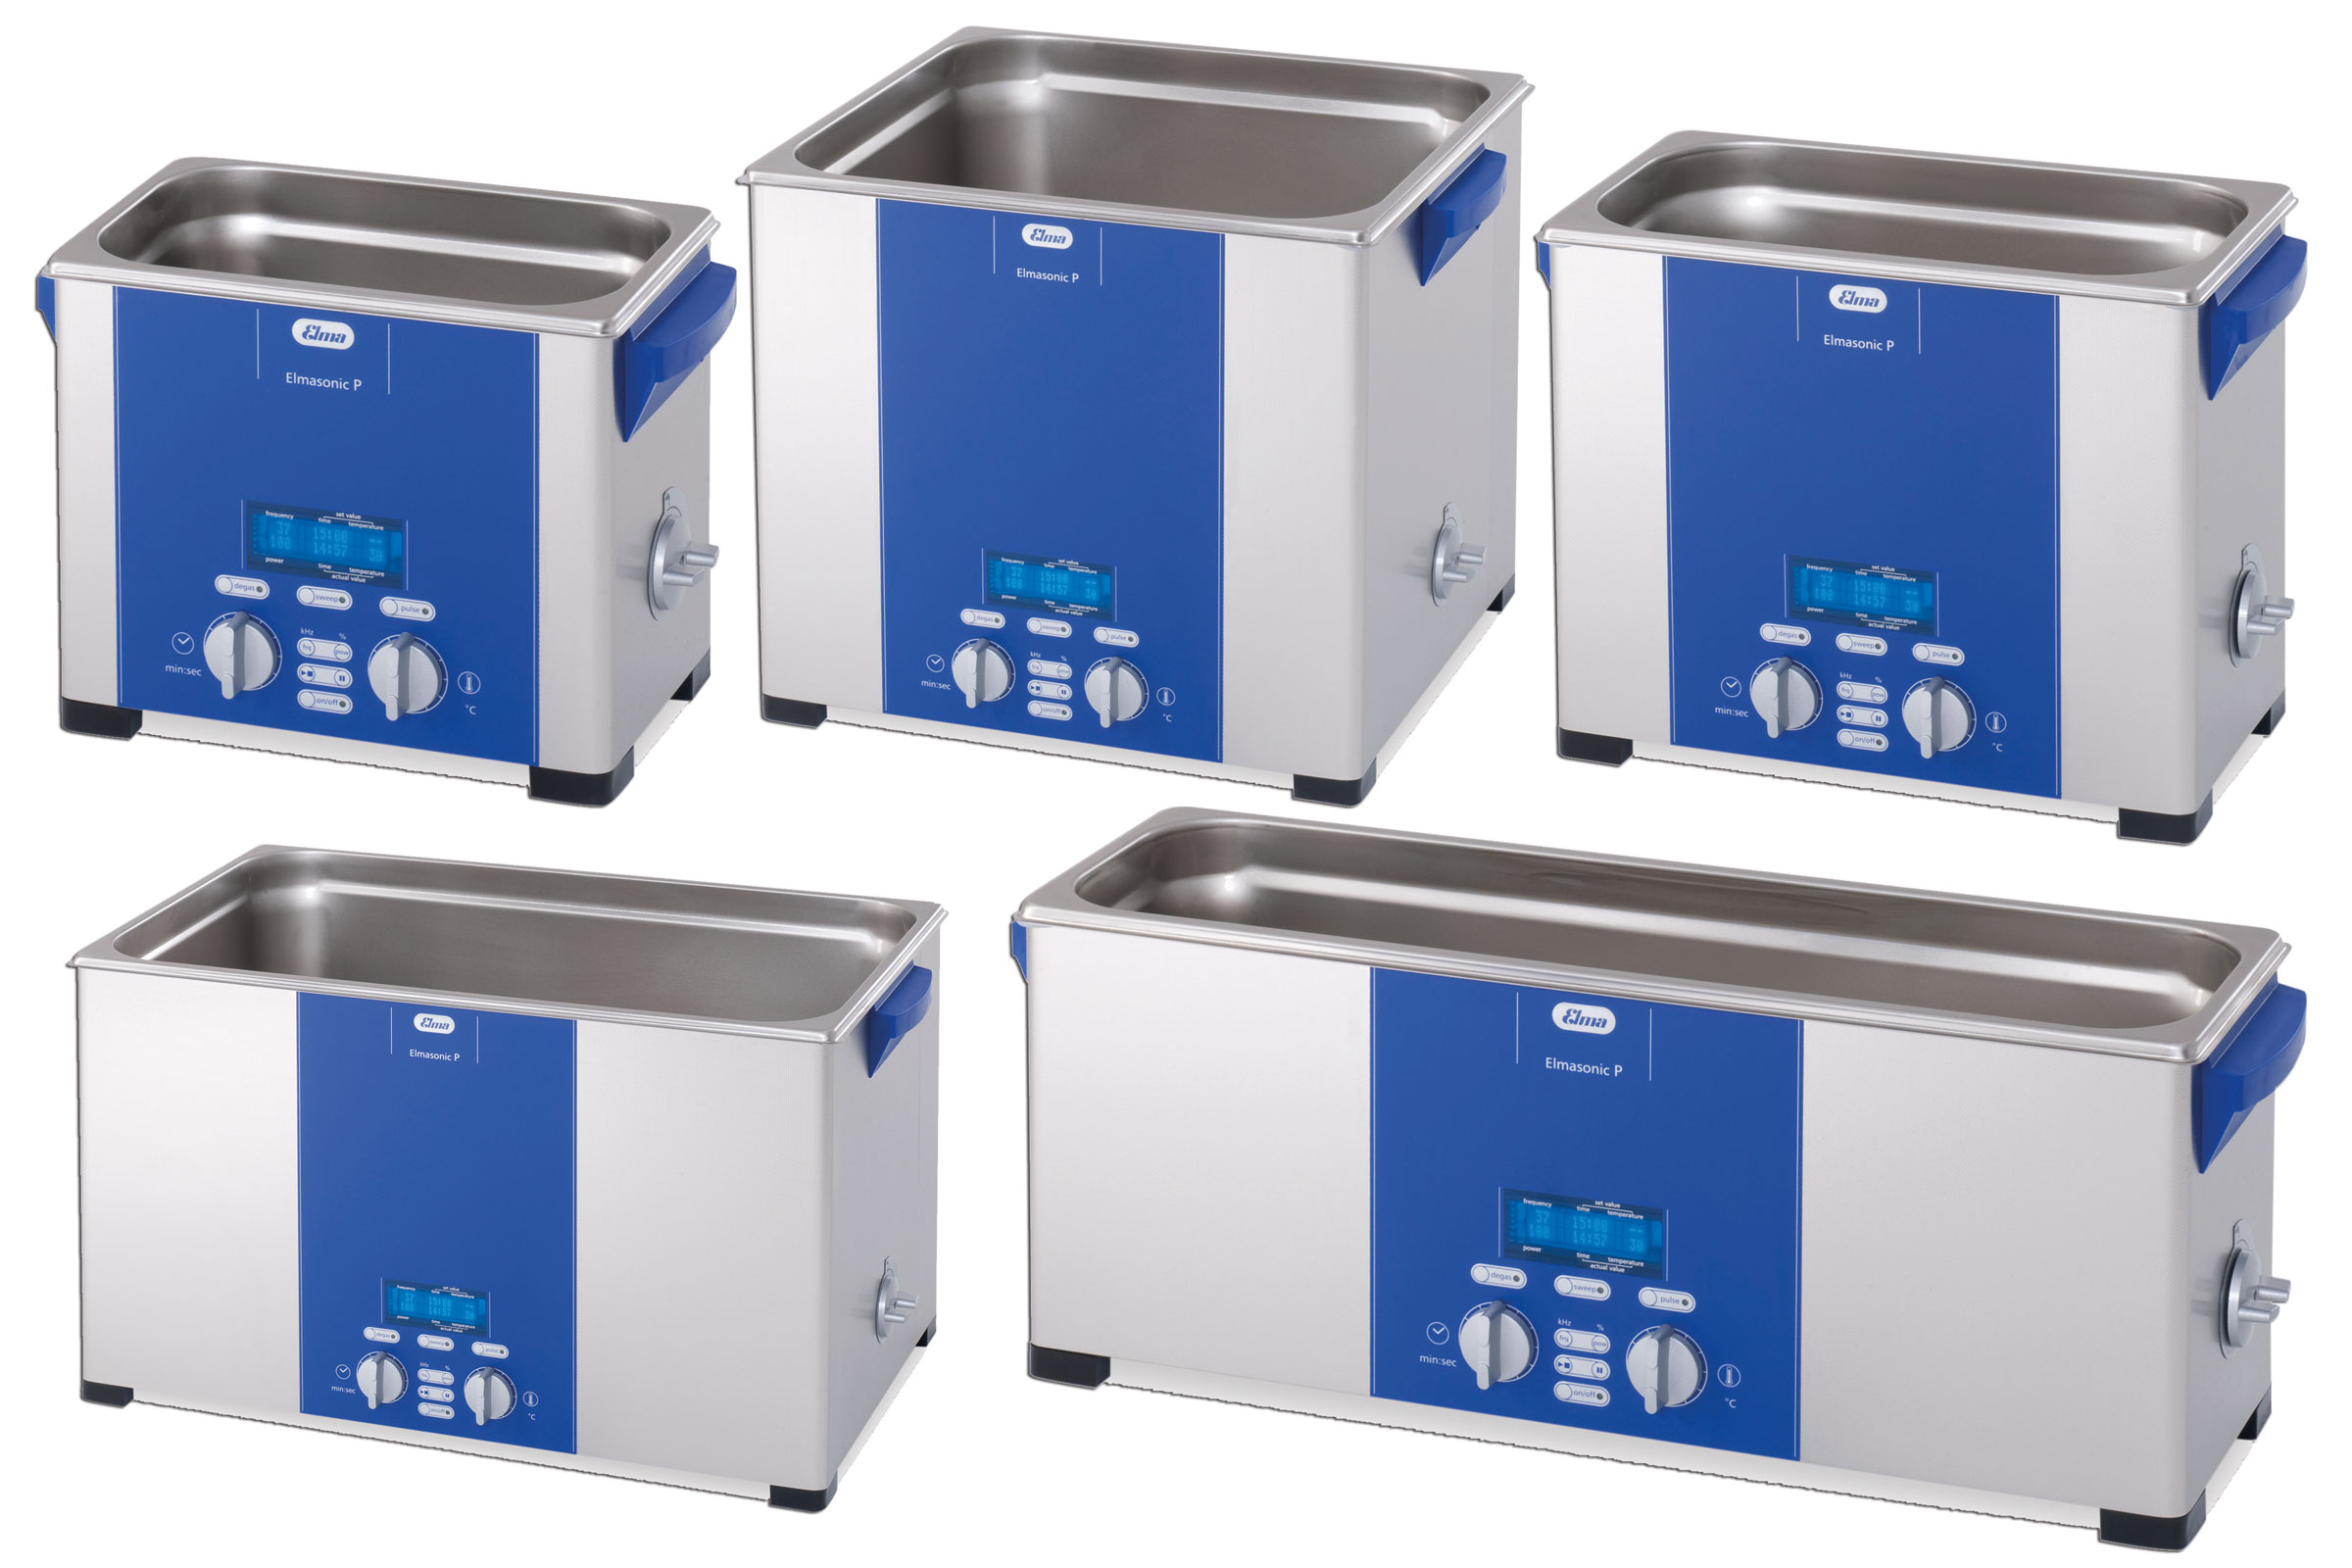 P60H Ultrasonic Cleaner w/ hea w/ heat, drain adj. power